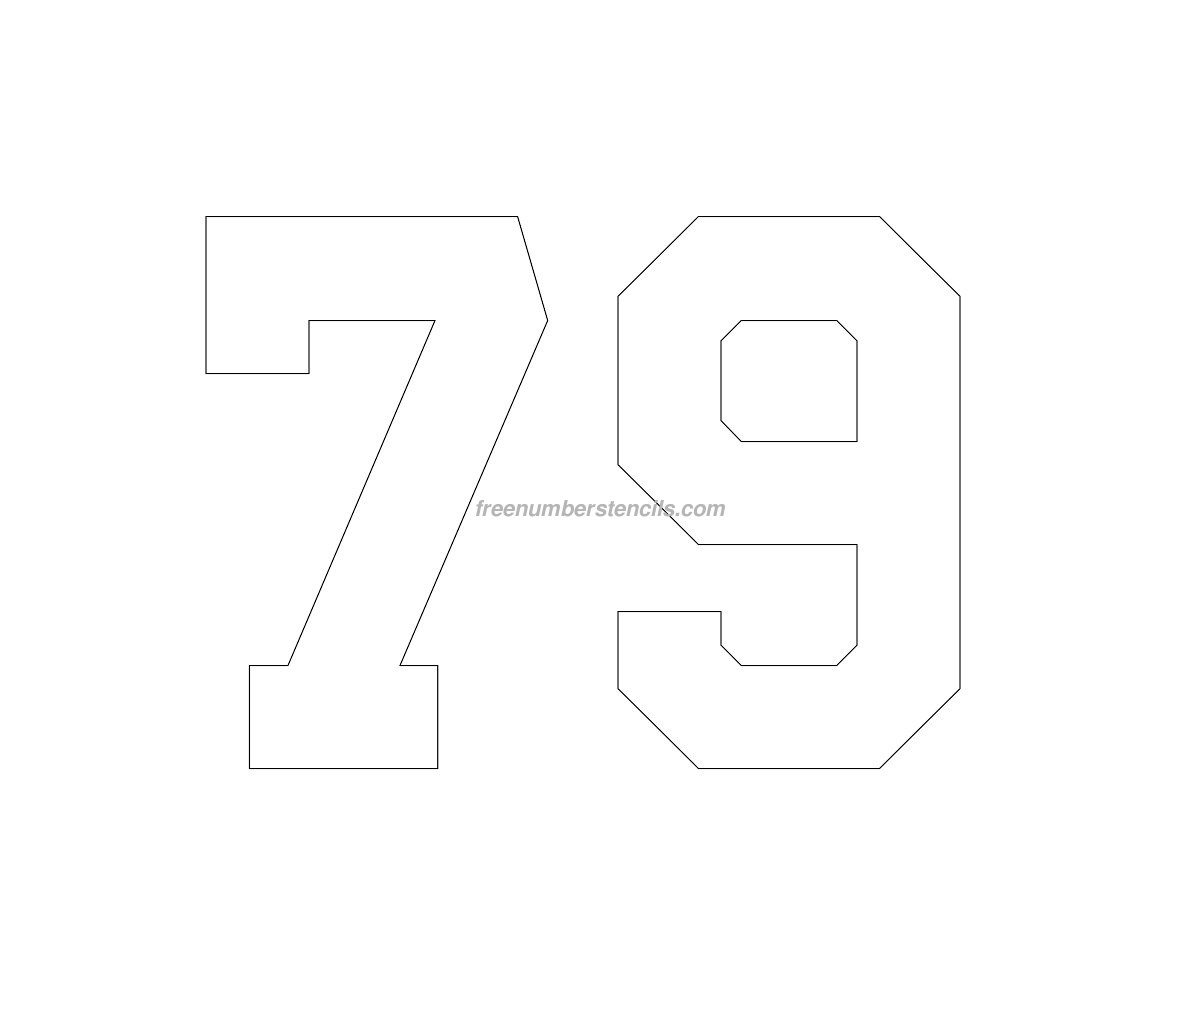 Free Football 79 Number Stencil - Freenumberstencils.com